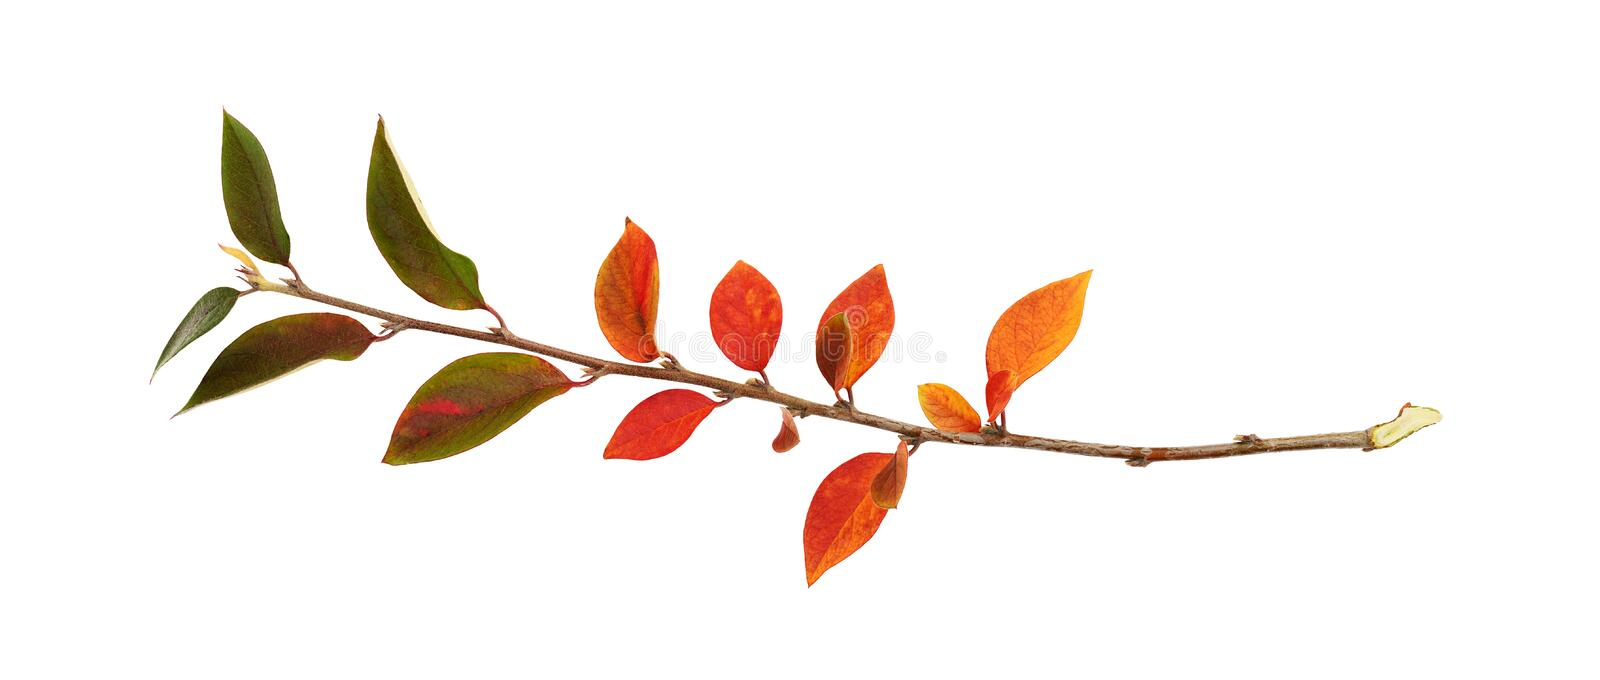 Twig of colorful autumn leaves. Isolated on white royalty free stock photo